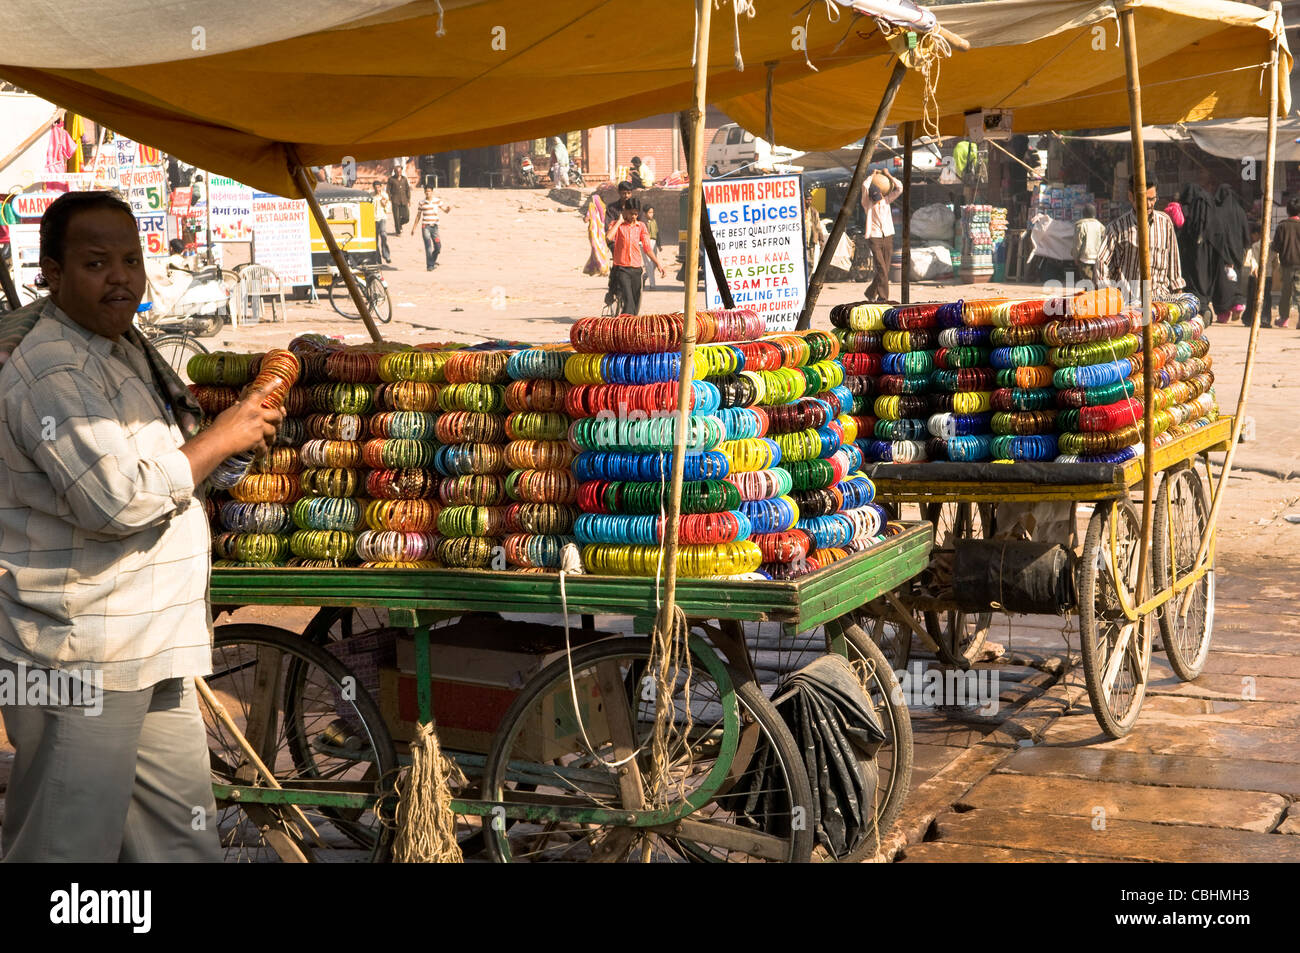 A bangle stall on wheels in Rajasthan, India. - Stock Image